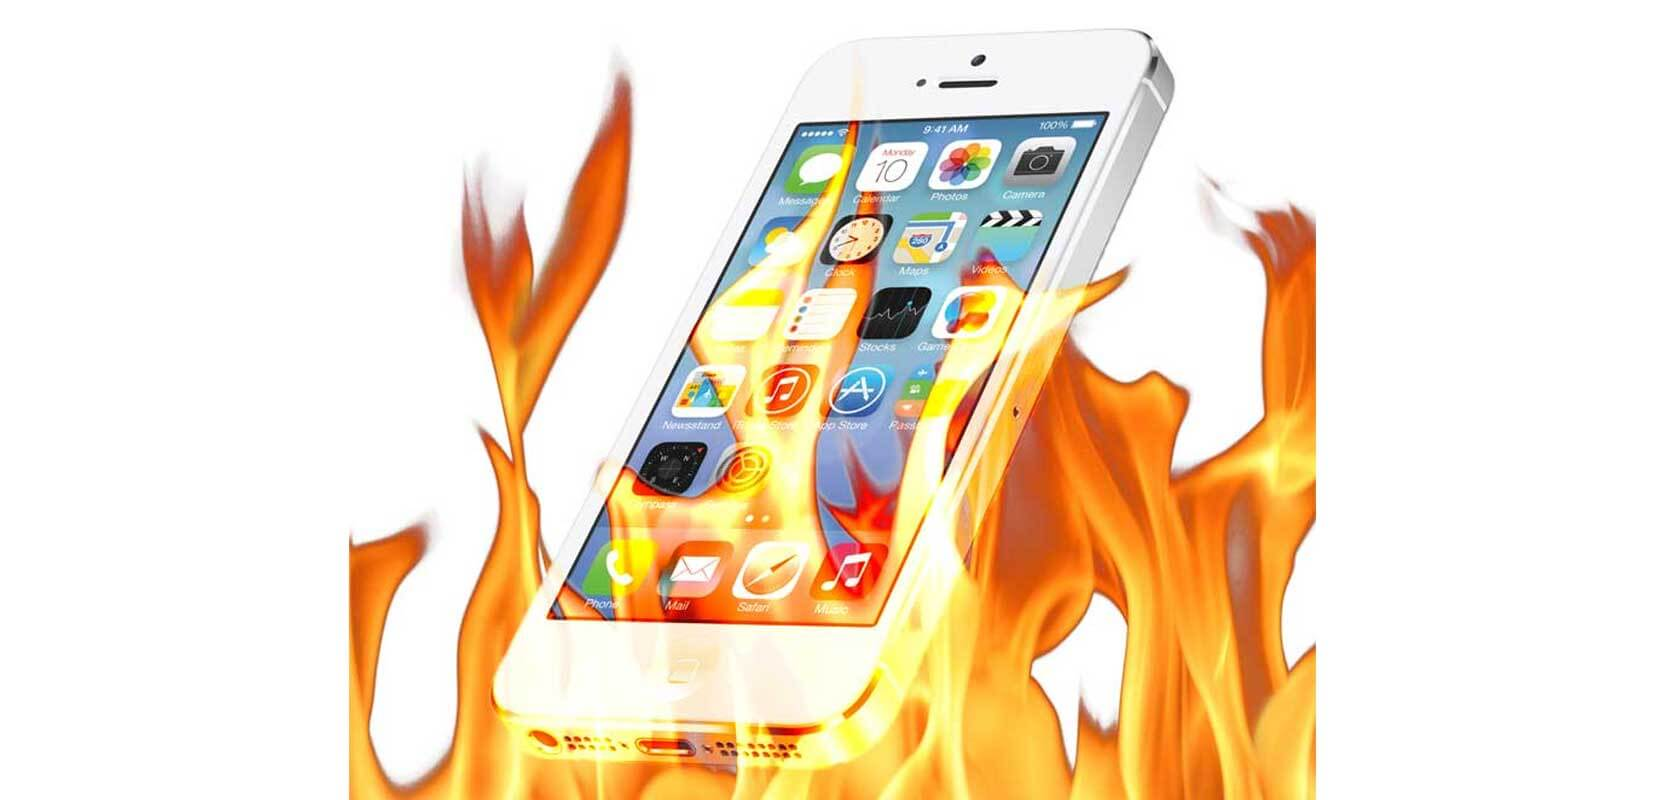 iphone-hot.jpg